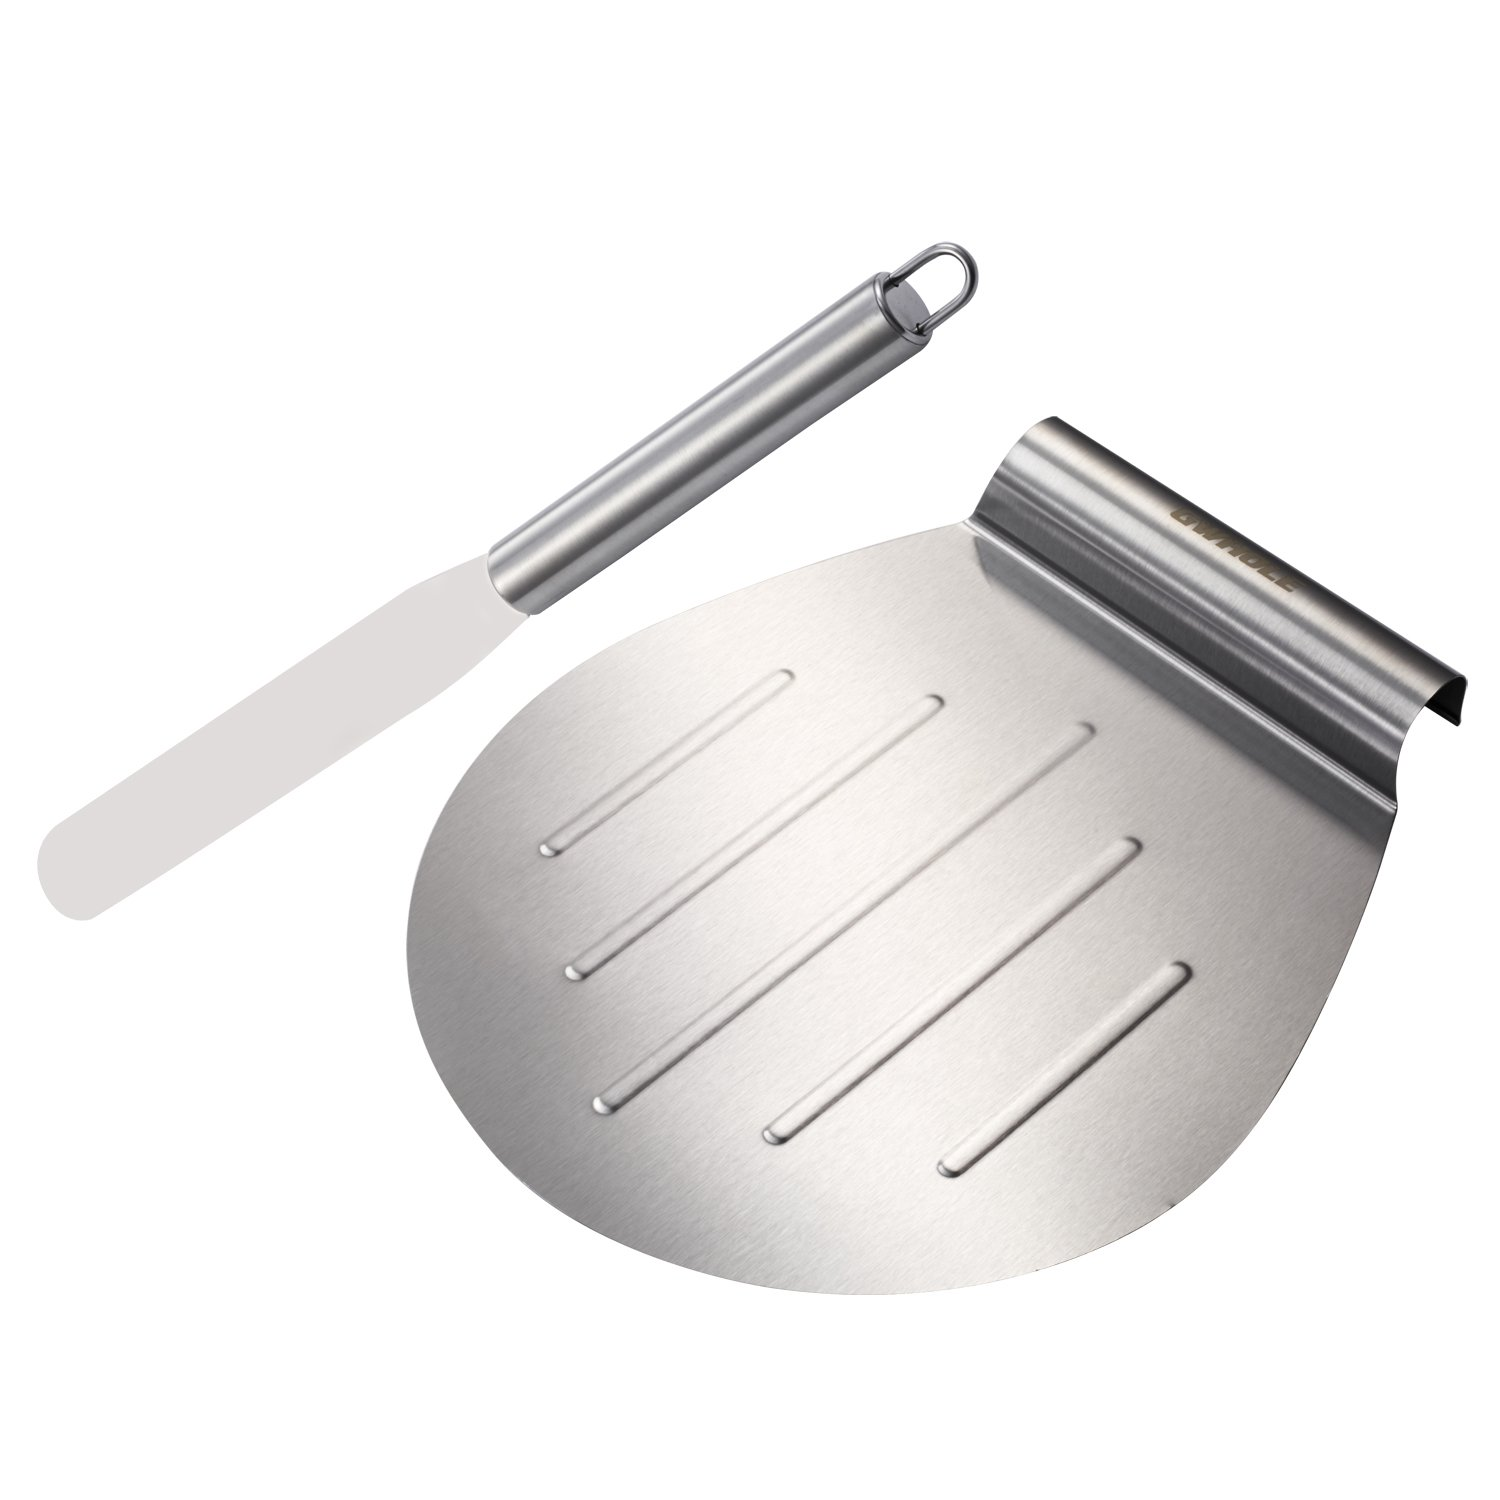 GWHOLE Stainless Steel 11'' Pizza and Cake Lifter with 6.3'' Straight Icing Spatula by GWHOLE